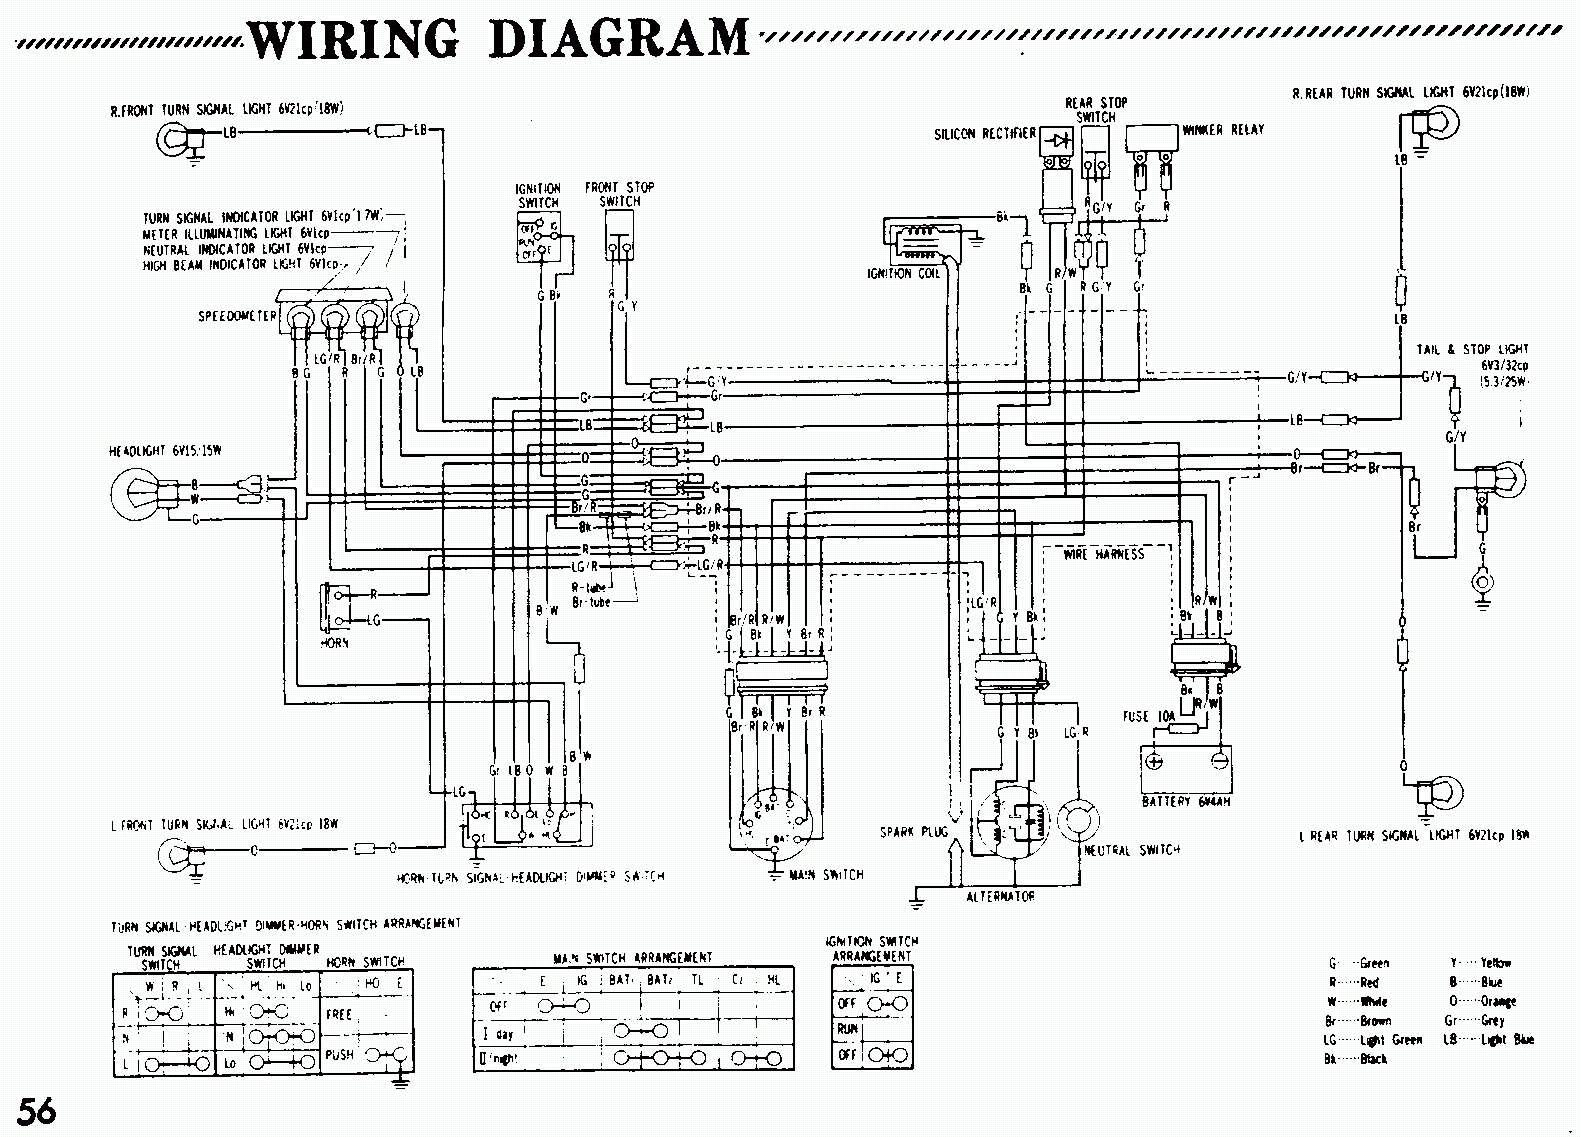 tbolt usa tech database tbolt usa, llc 1972 honda ct70 wiring diagram a  high quality